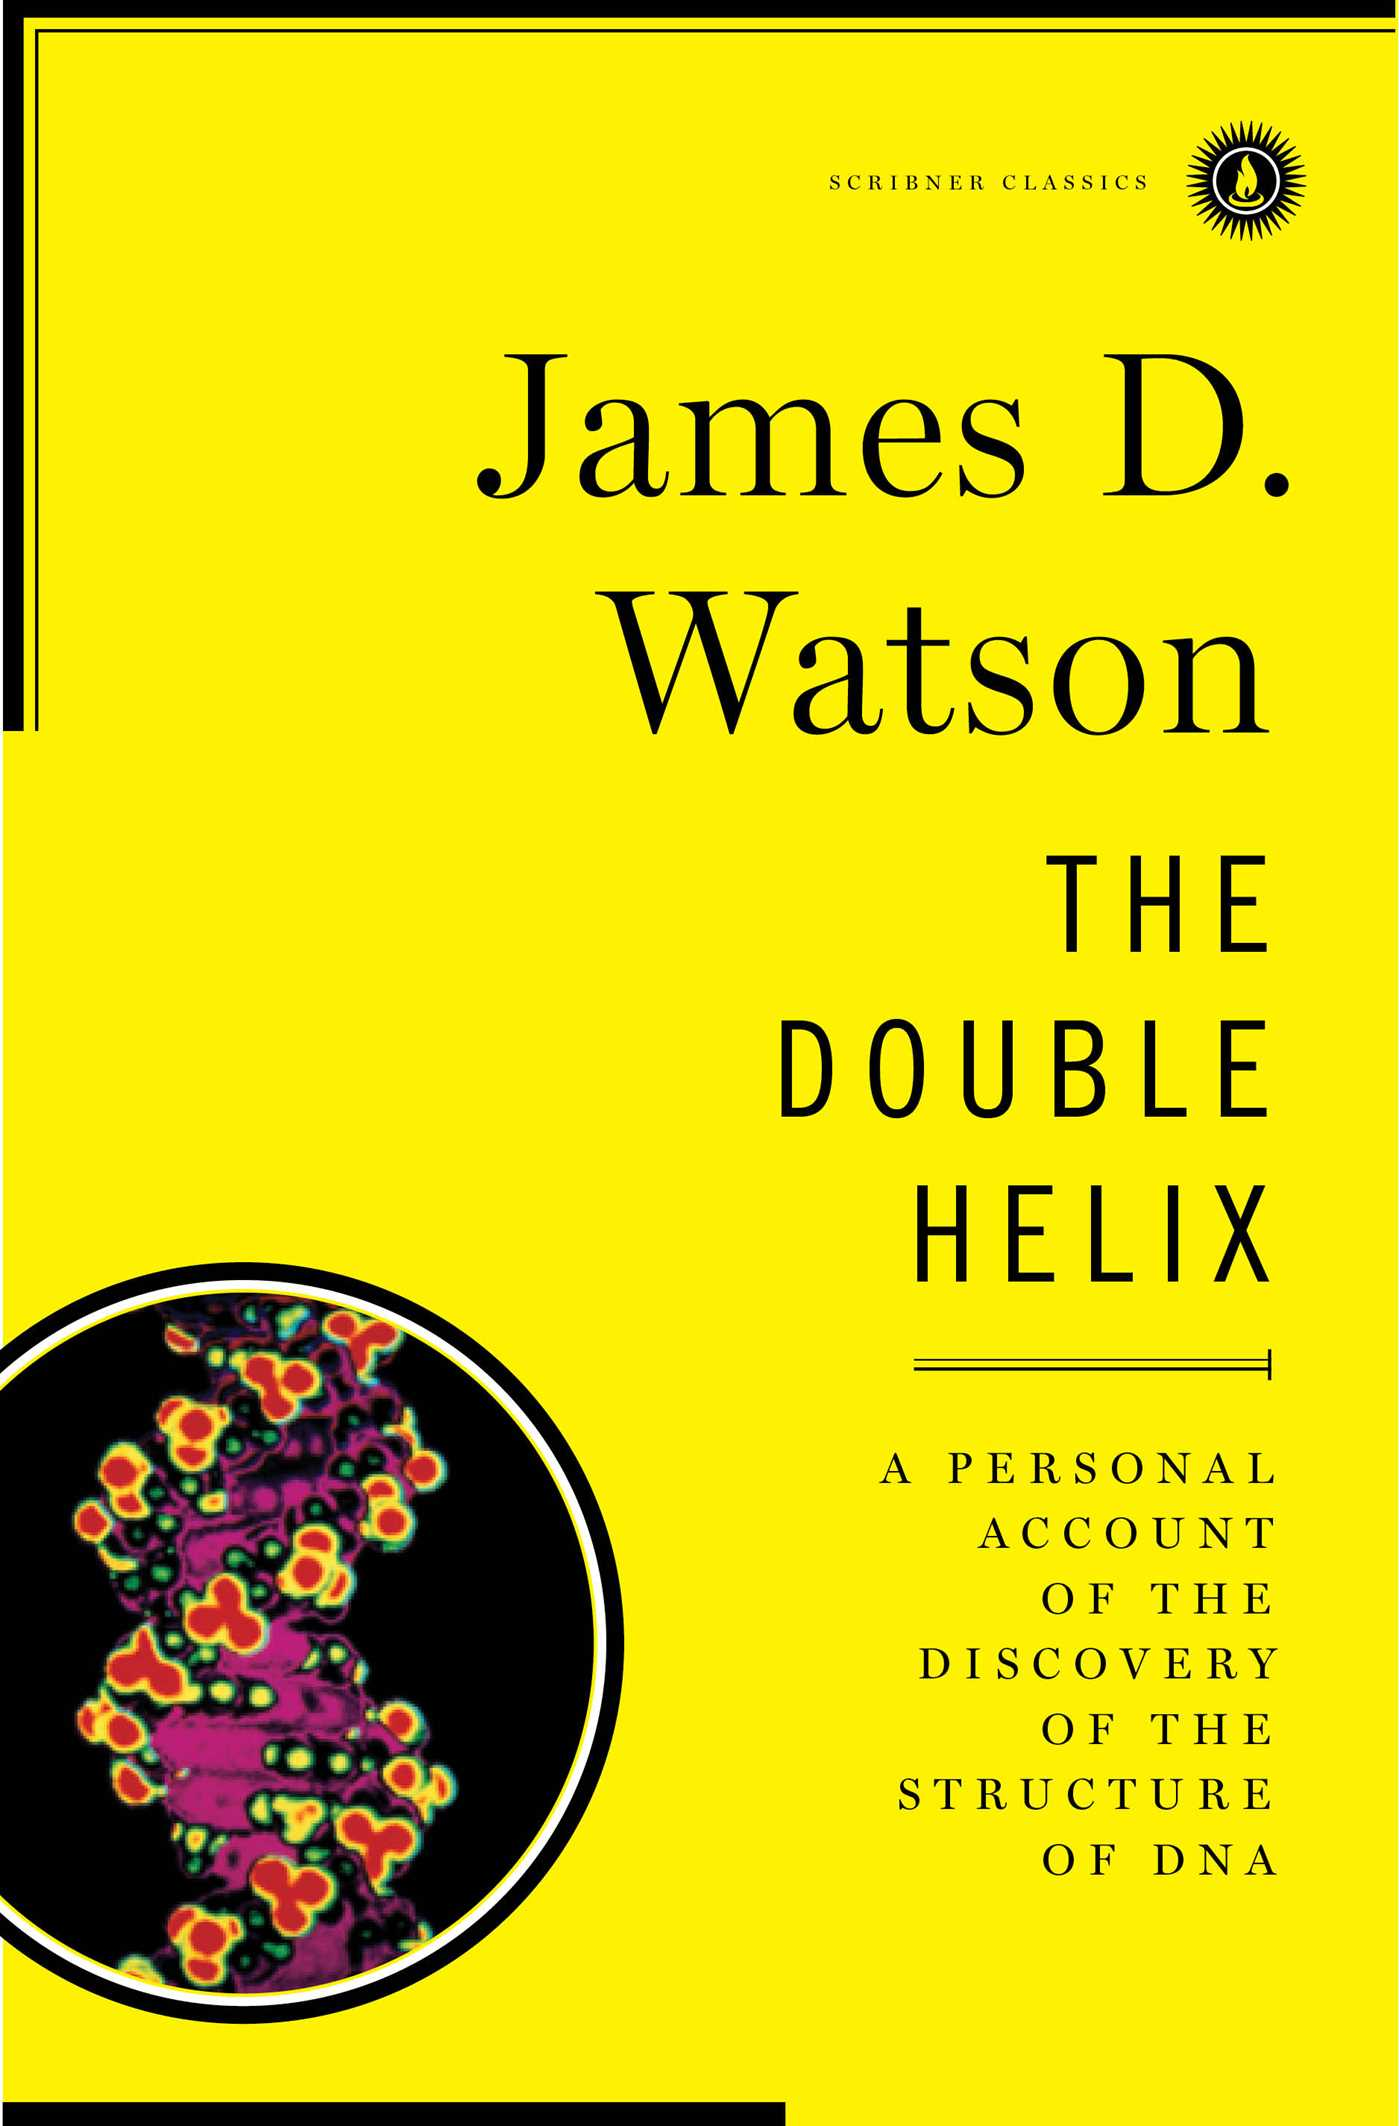 The double helix 9780743219174 hr